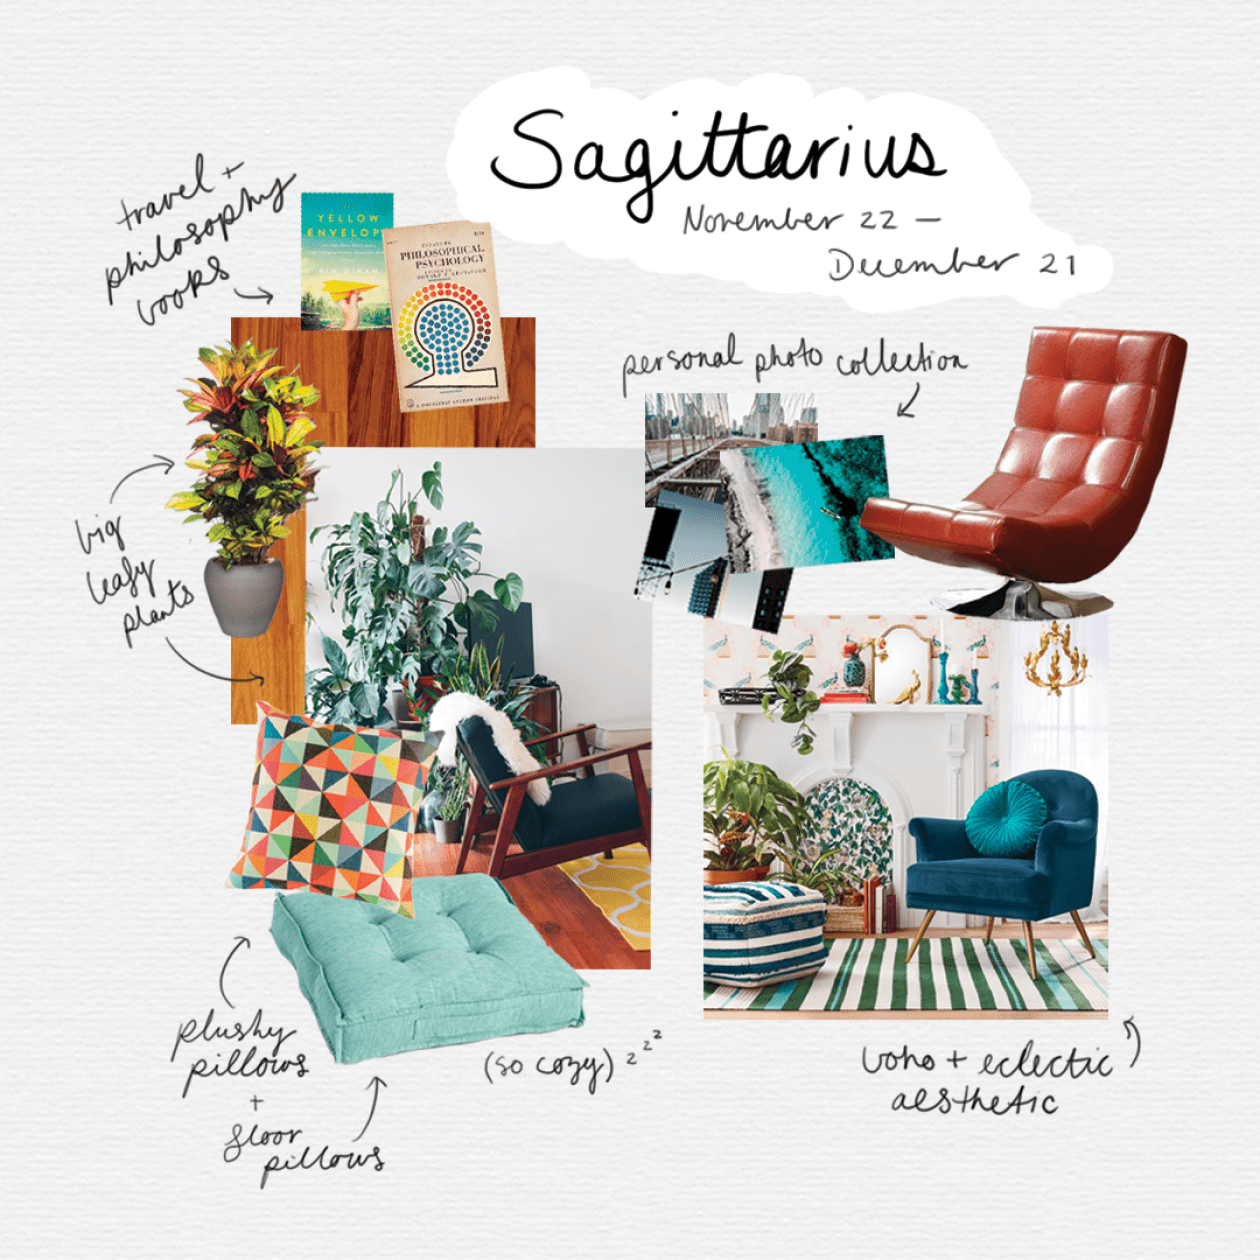 256f4326e3d collage of home furnishings based on the Sagittarius zodiac sign